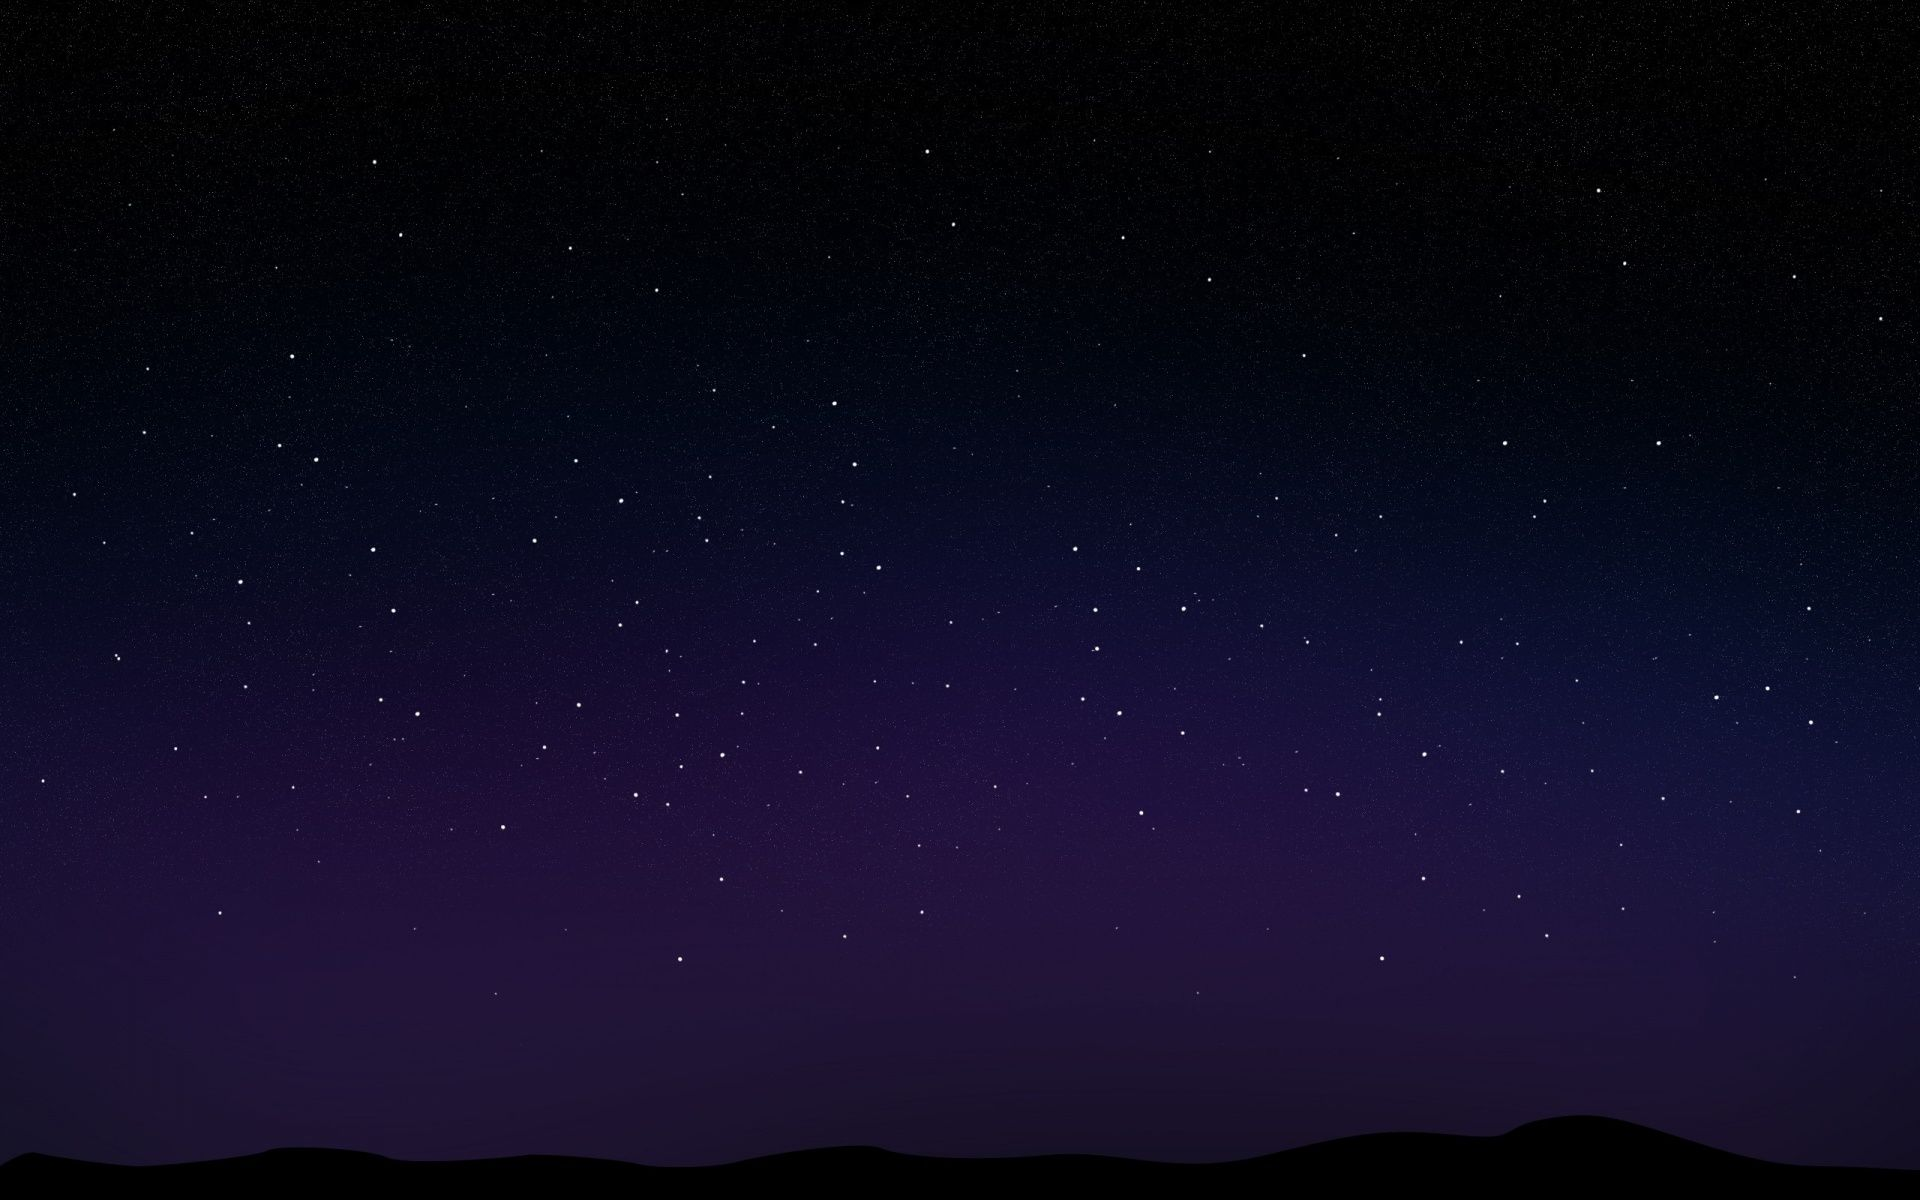 Starry Night Sky 1920x1080 Mtcgy Wallpaper Wp1209517